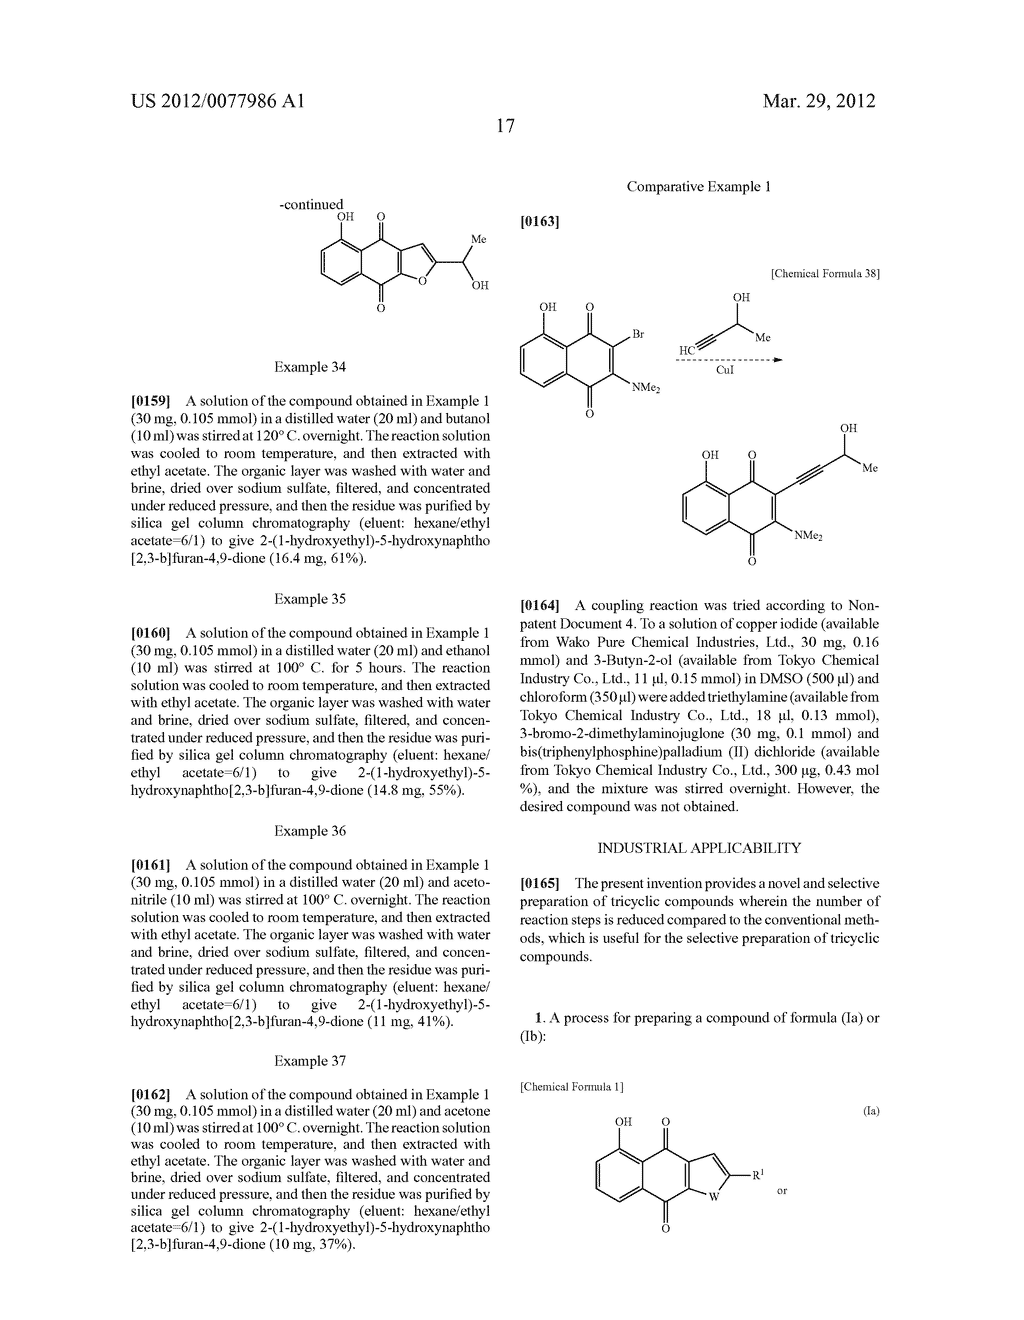 NOVEL PREPARATION OF ANTICANCER-ACTIVE TRICYCLIC COMPOUNDS VIA ALKYNE     COUPLING REACTION - diagram, schematic, and image 18